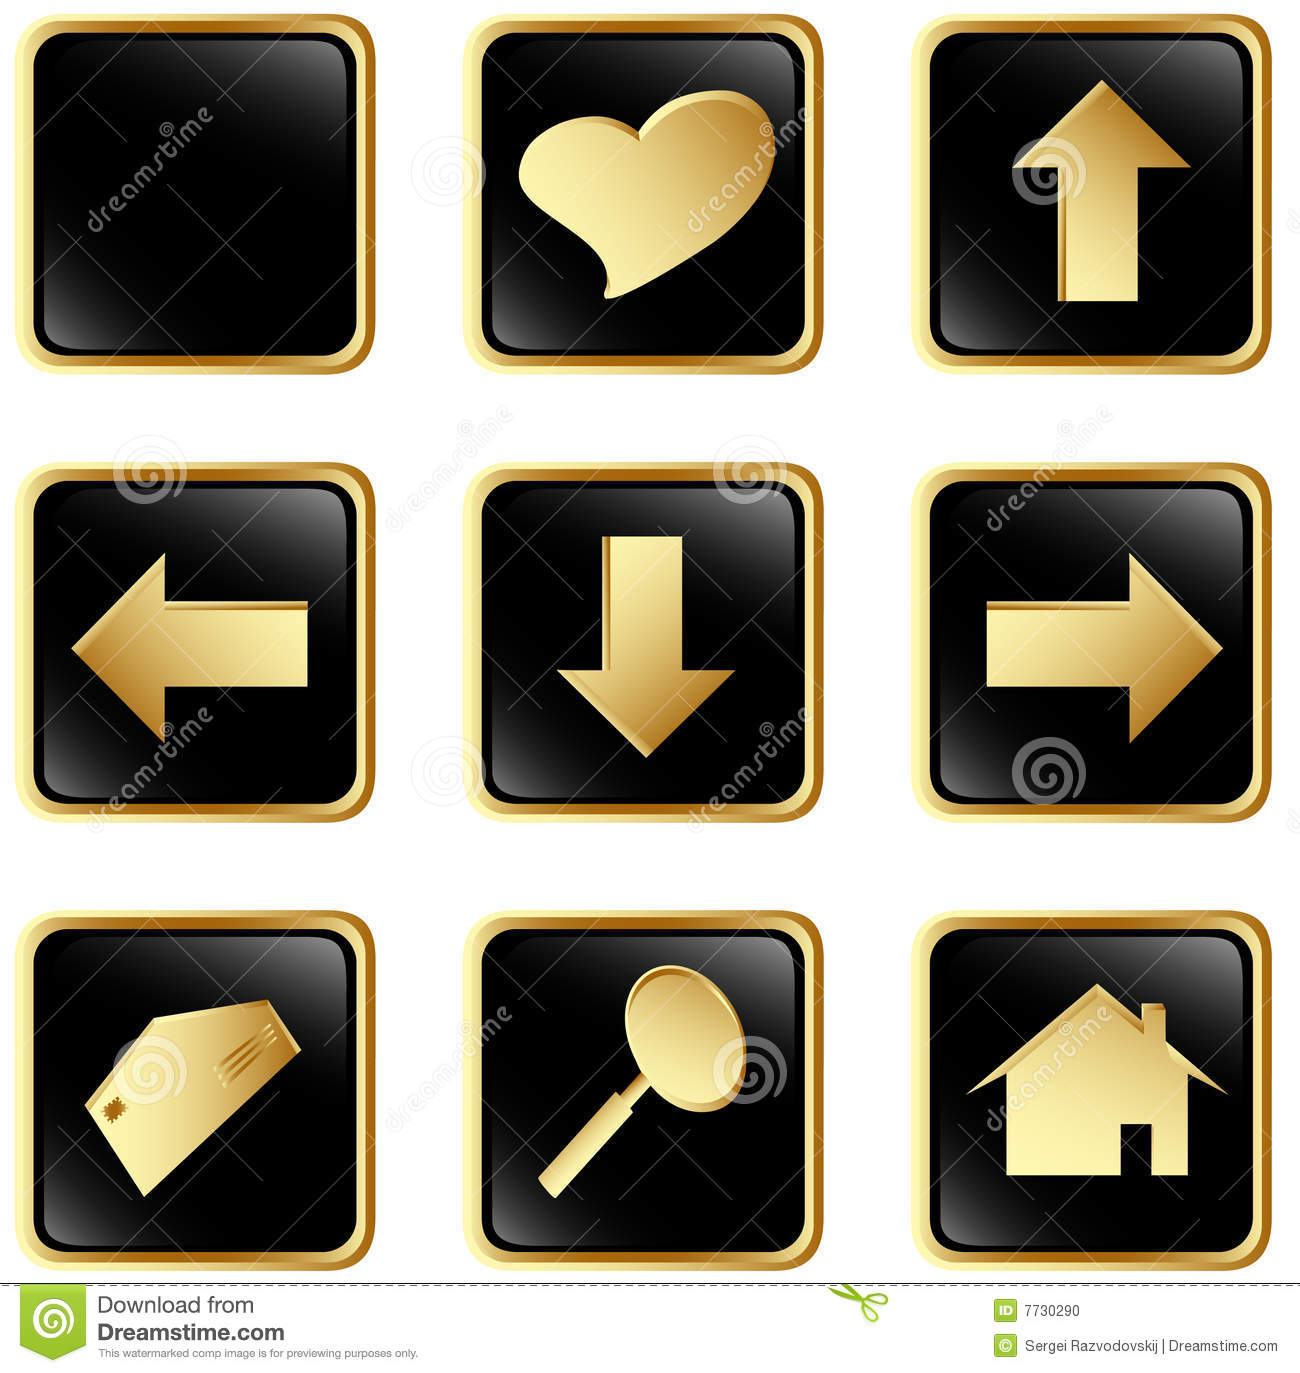 Black Gold Square Web Buttons Stock Photo.